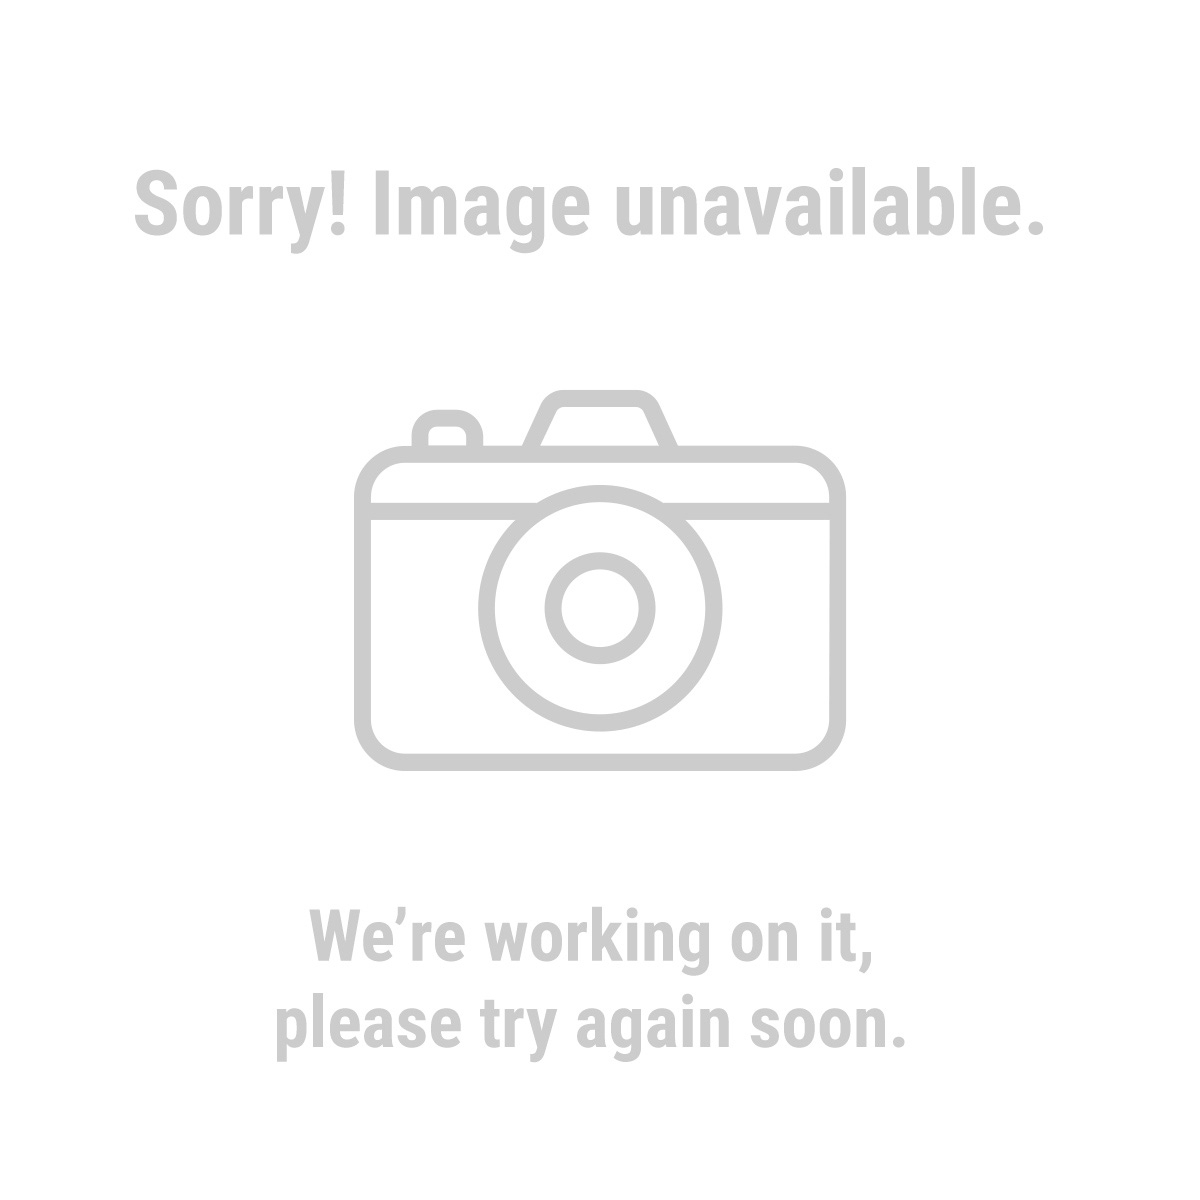 Bunker Hill Security 95914 Weatherproof Color Security Camera with Night Vision